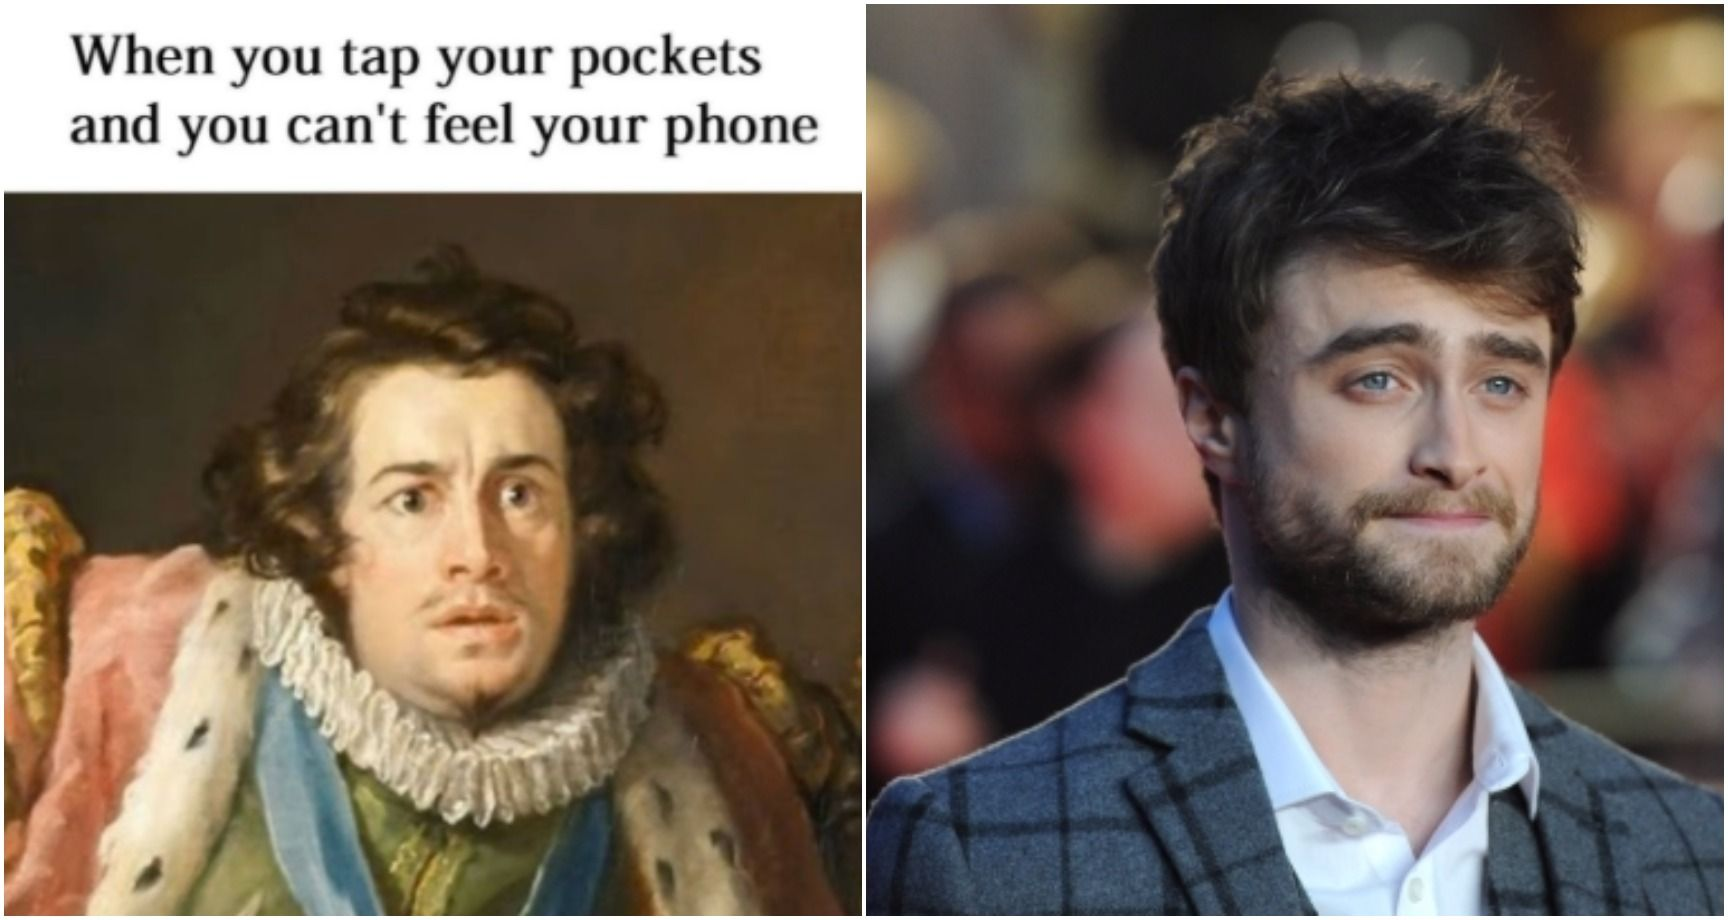 15 Hilarious Classical Art Memes That Are Too Good To Be Forgotten